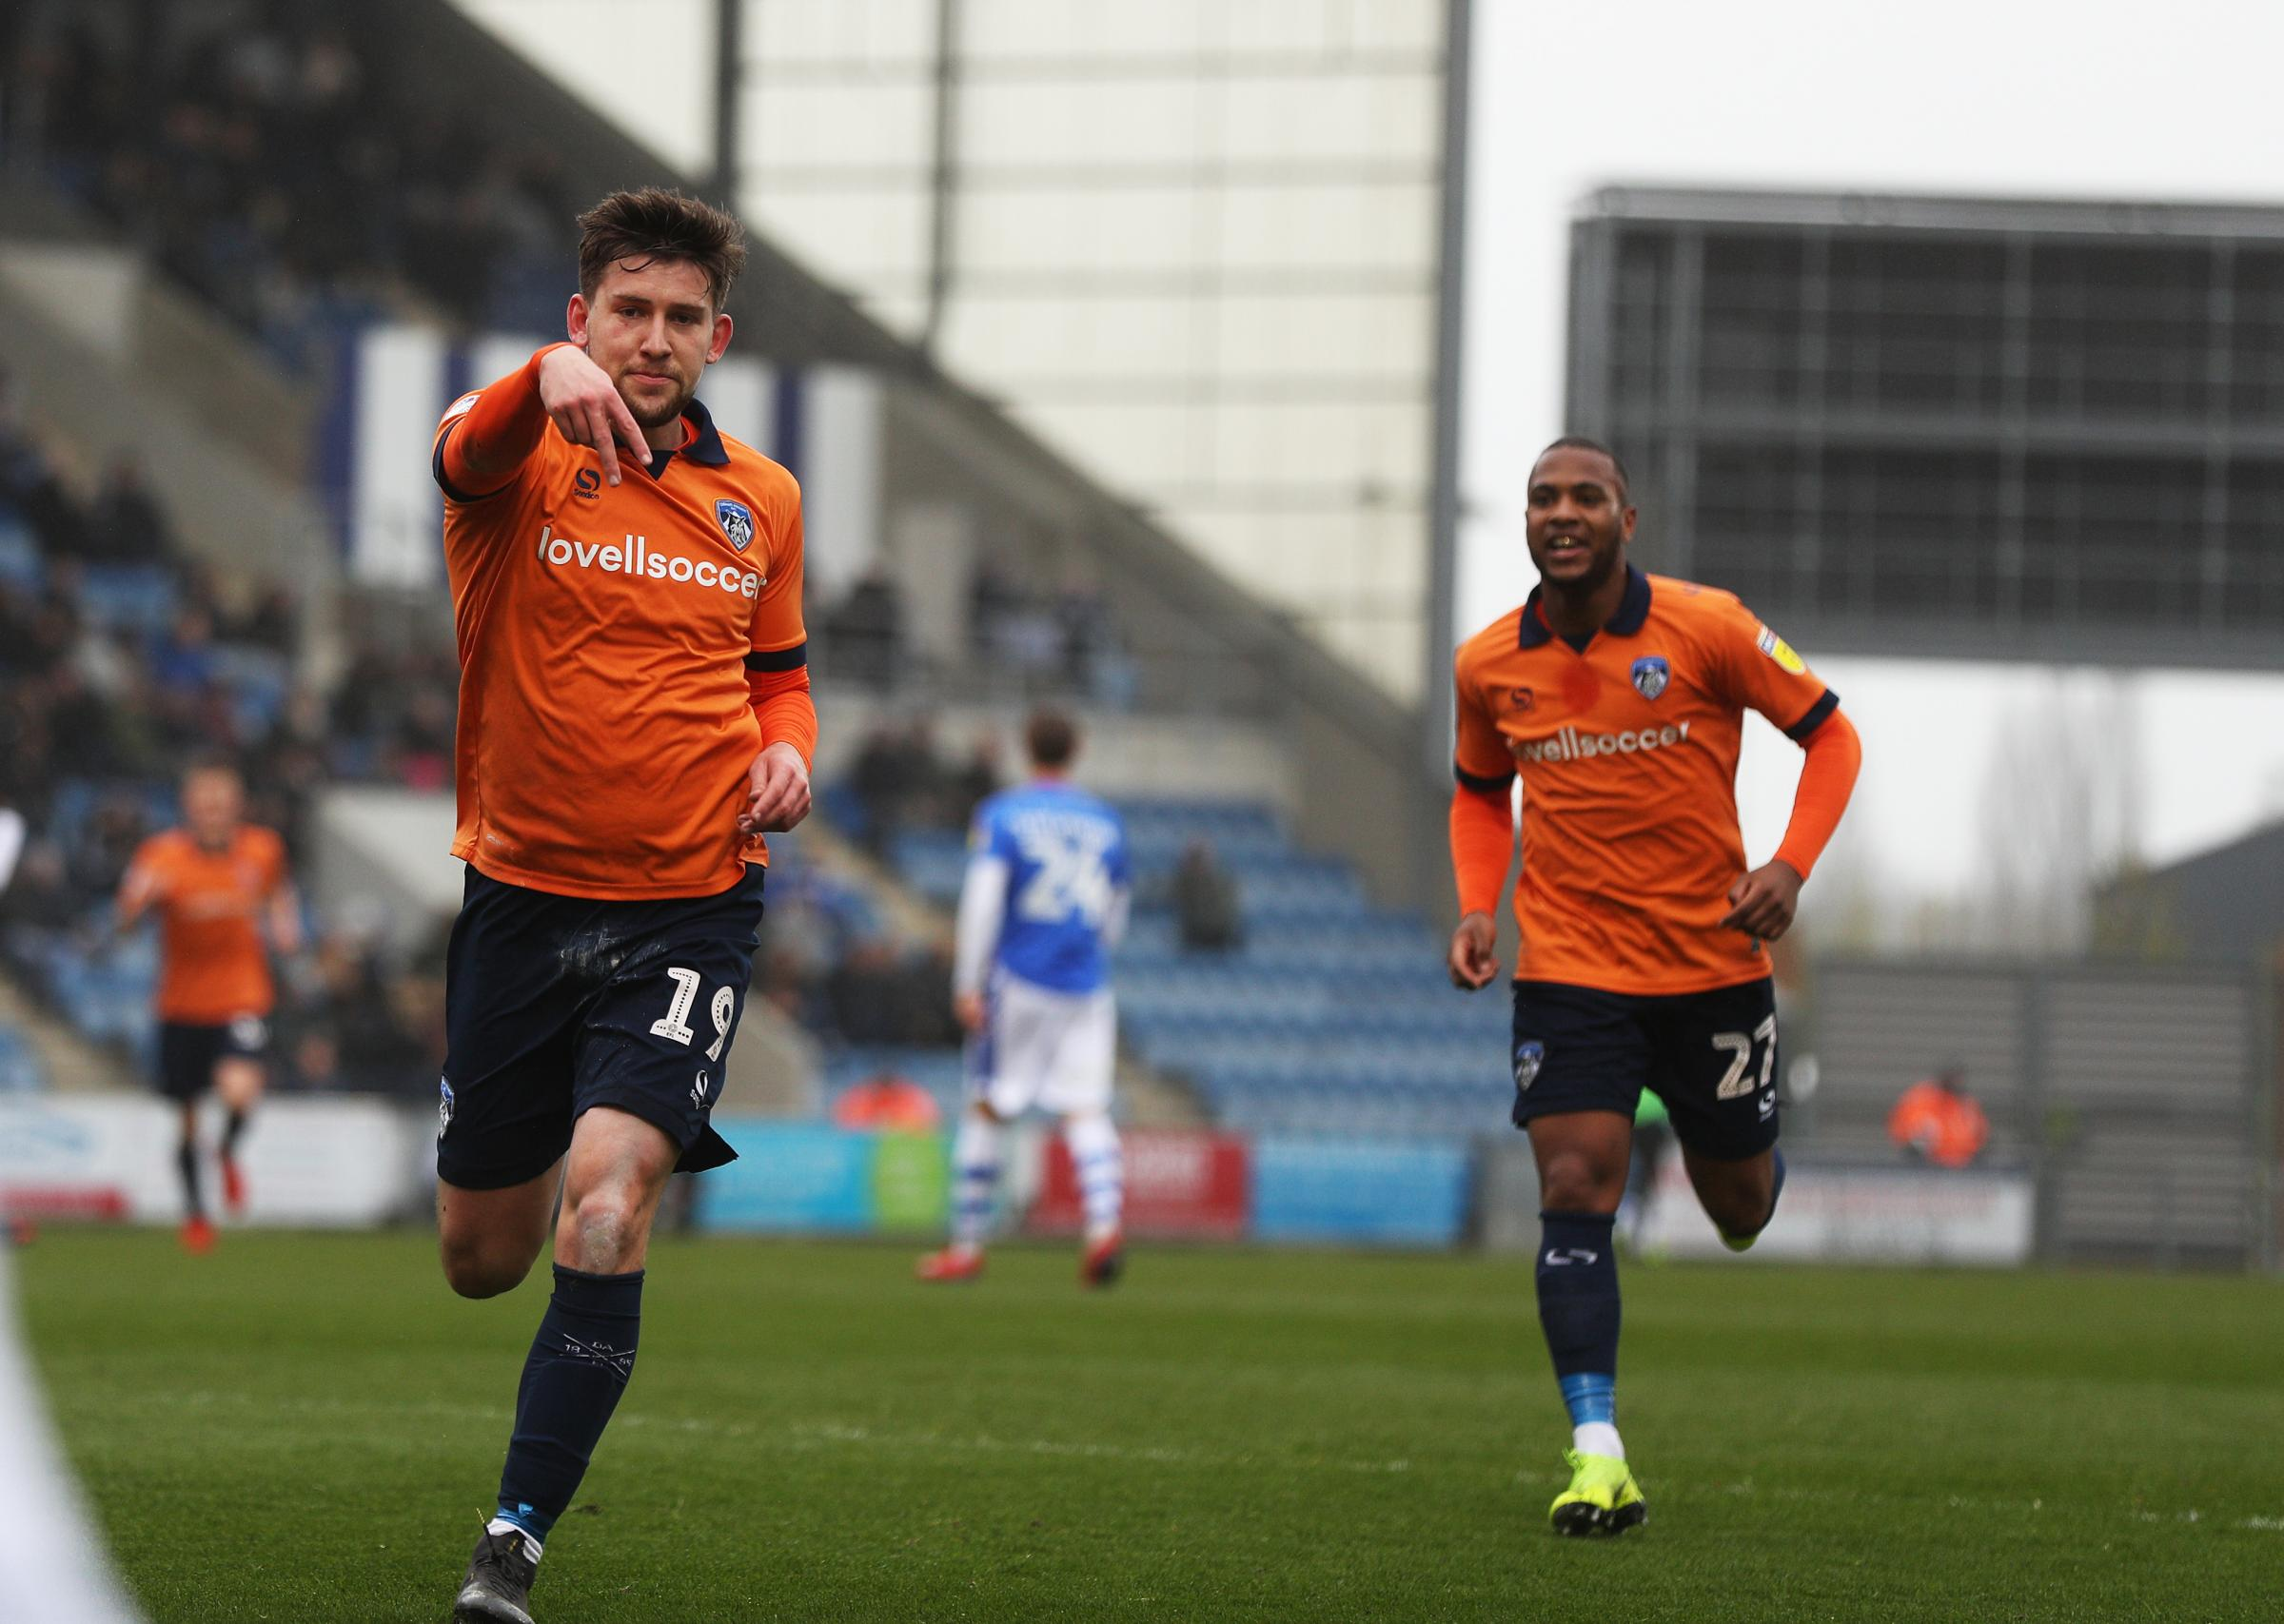 CELEBRATION: Oldham's Callum Lang scored at Colchester